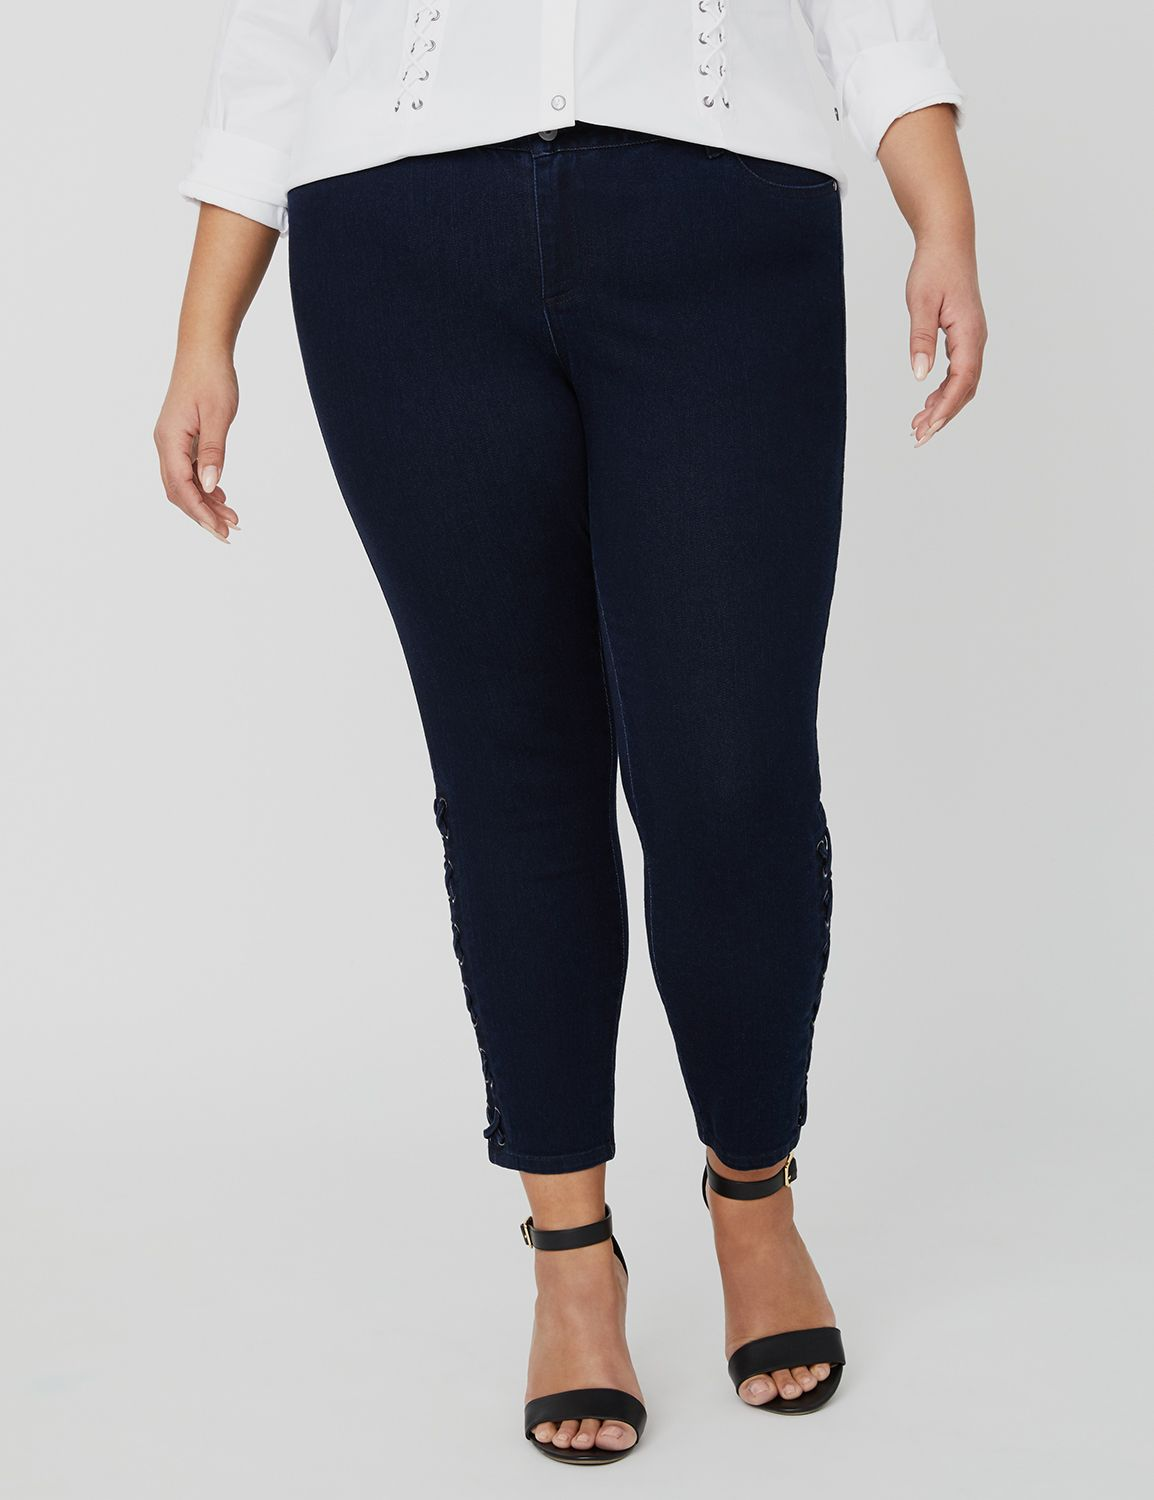 Curvy Collection Lace-Up Jean 1088607 Curvy Collection Sateen (11 MP-300099464